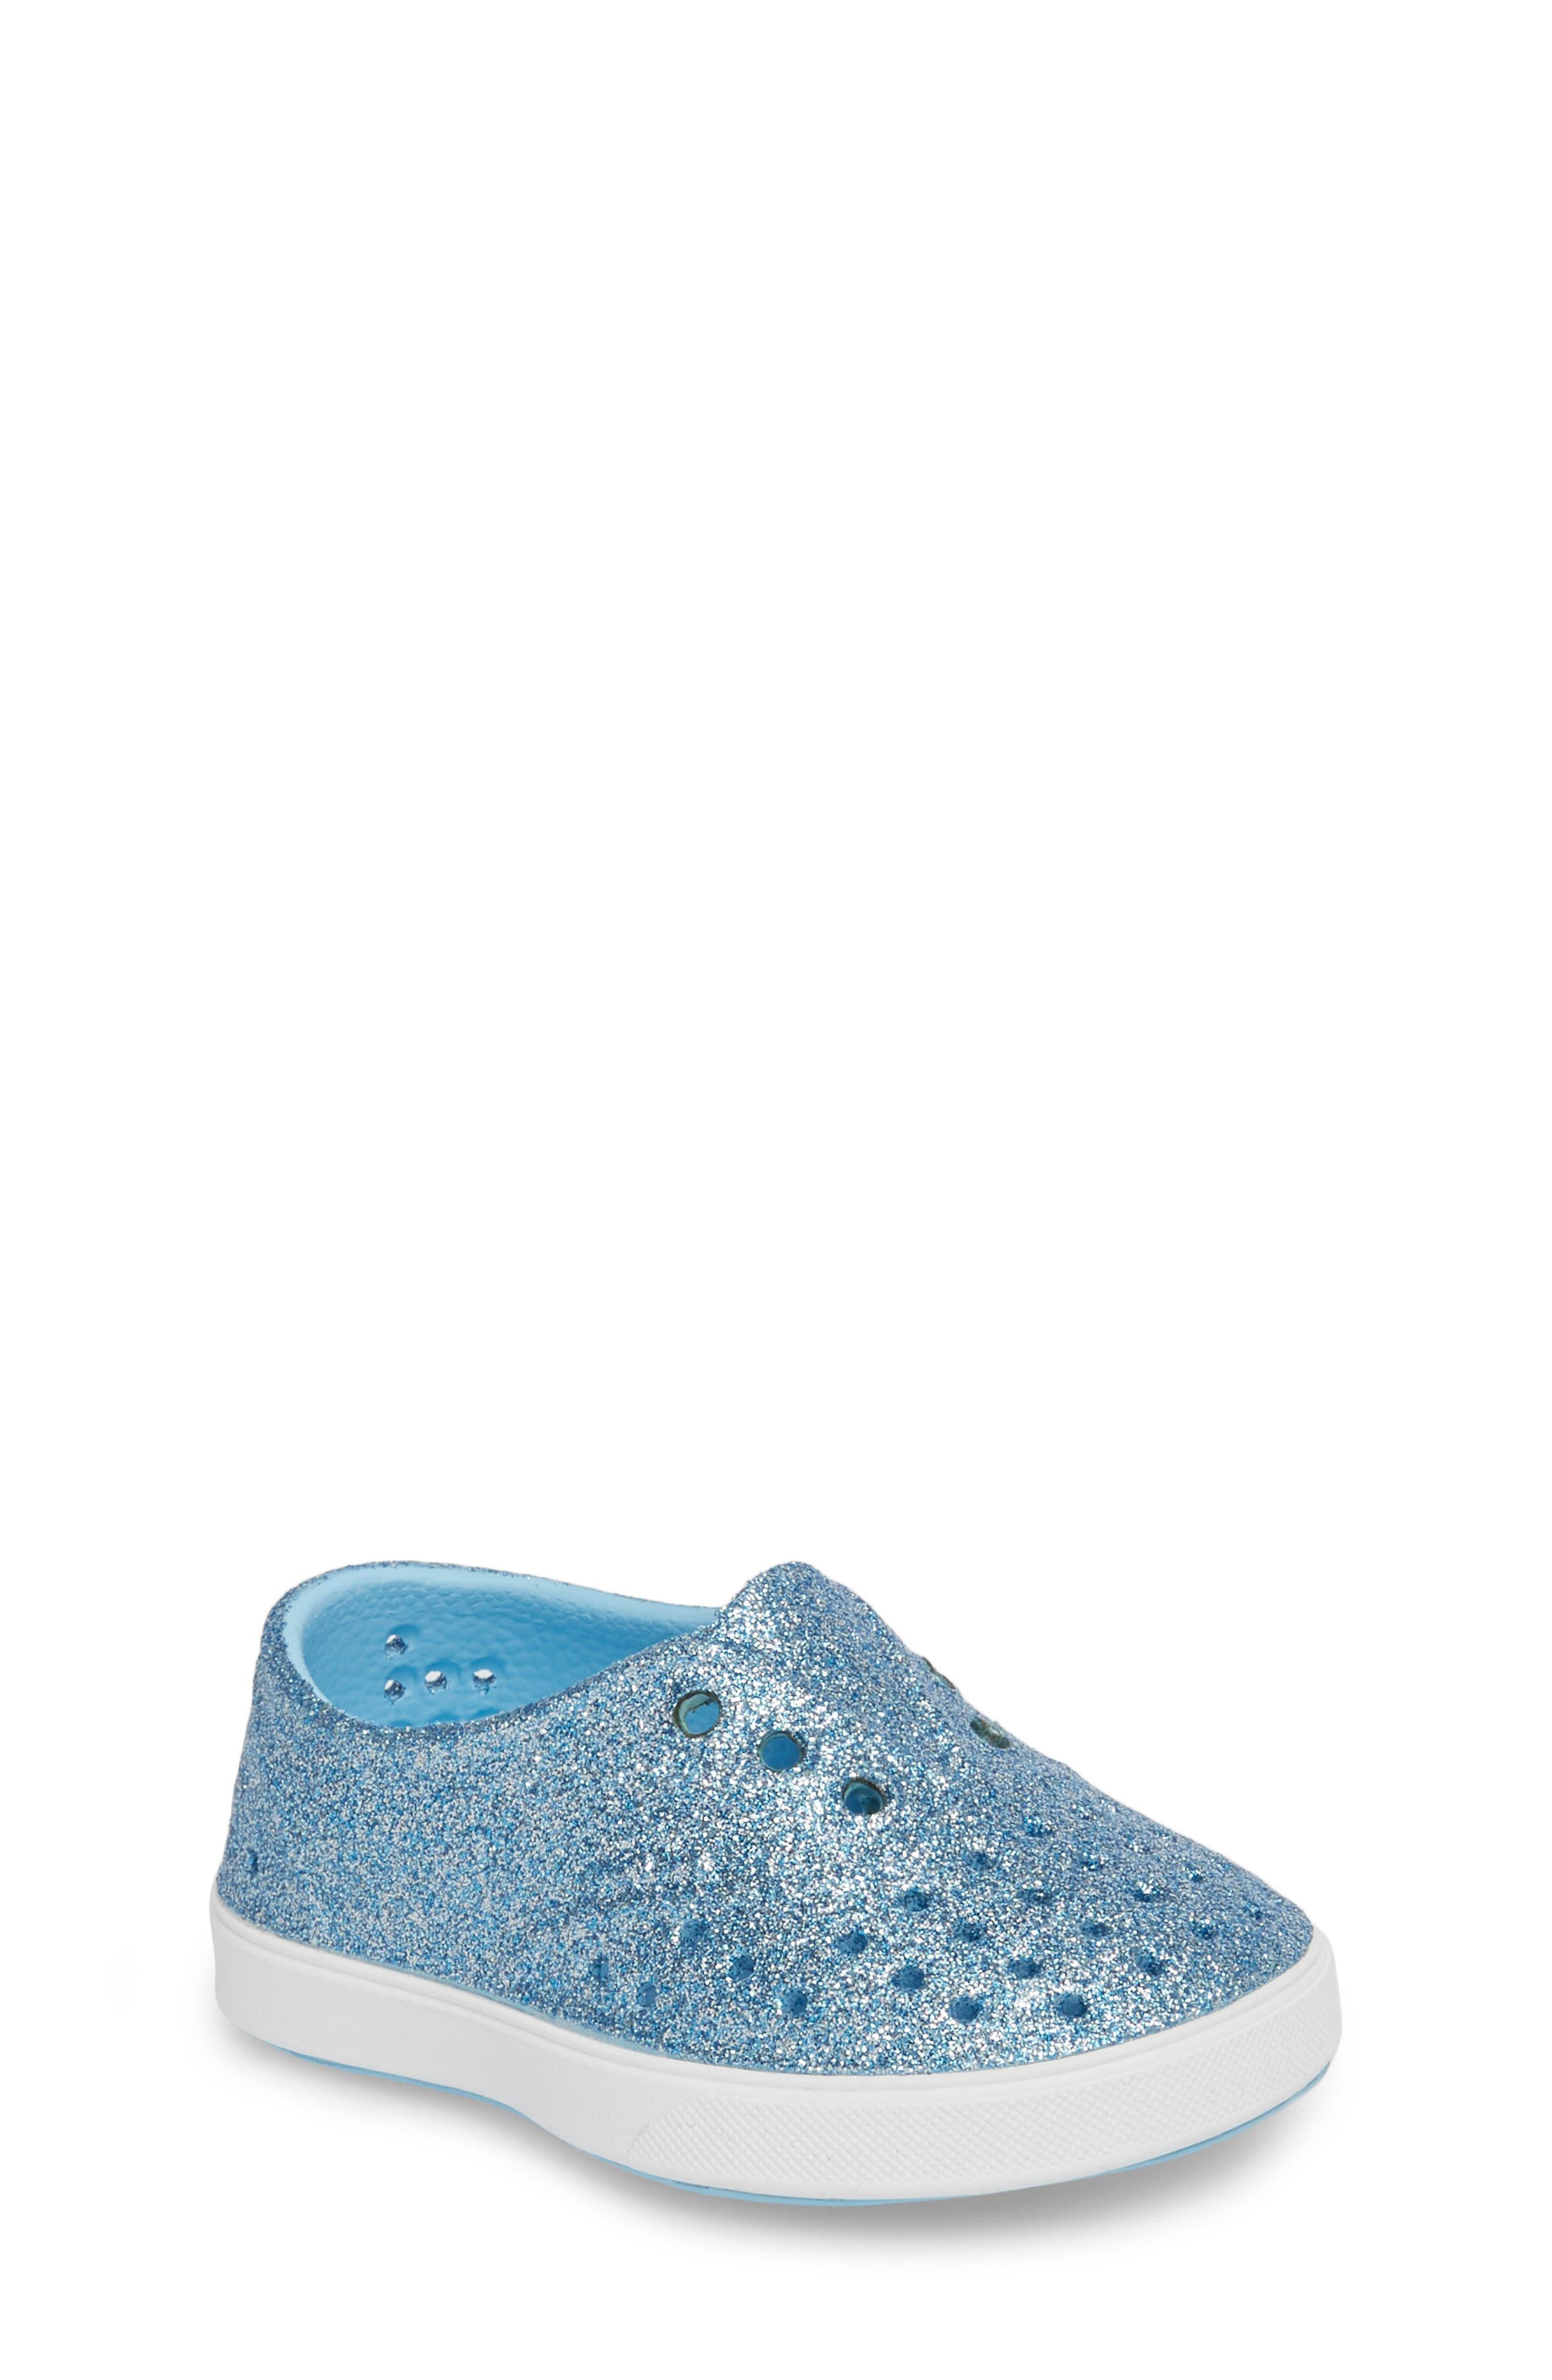 Miller Sparkly Perforated Slip-On,                             Main thumbnail 1, color,                             484